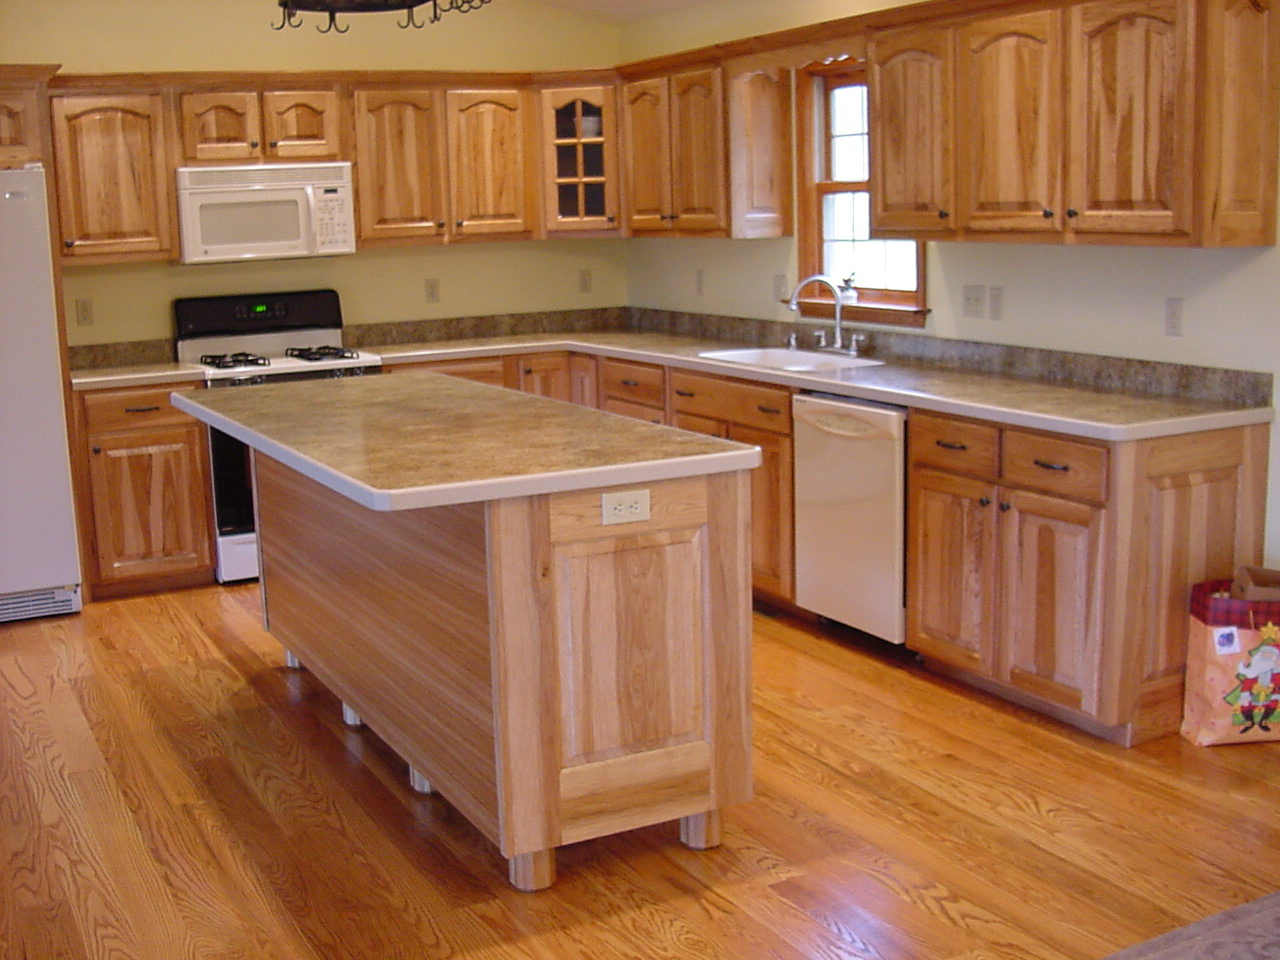 How To Laminate Countertops With Formica Home Improvement